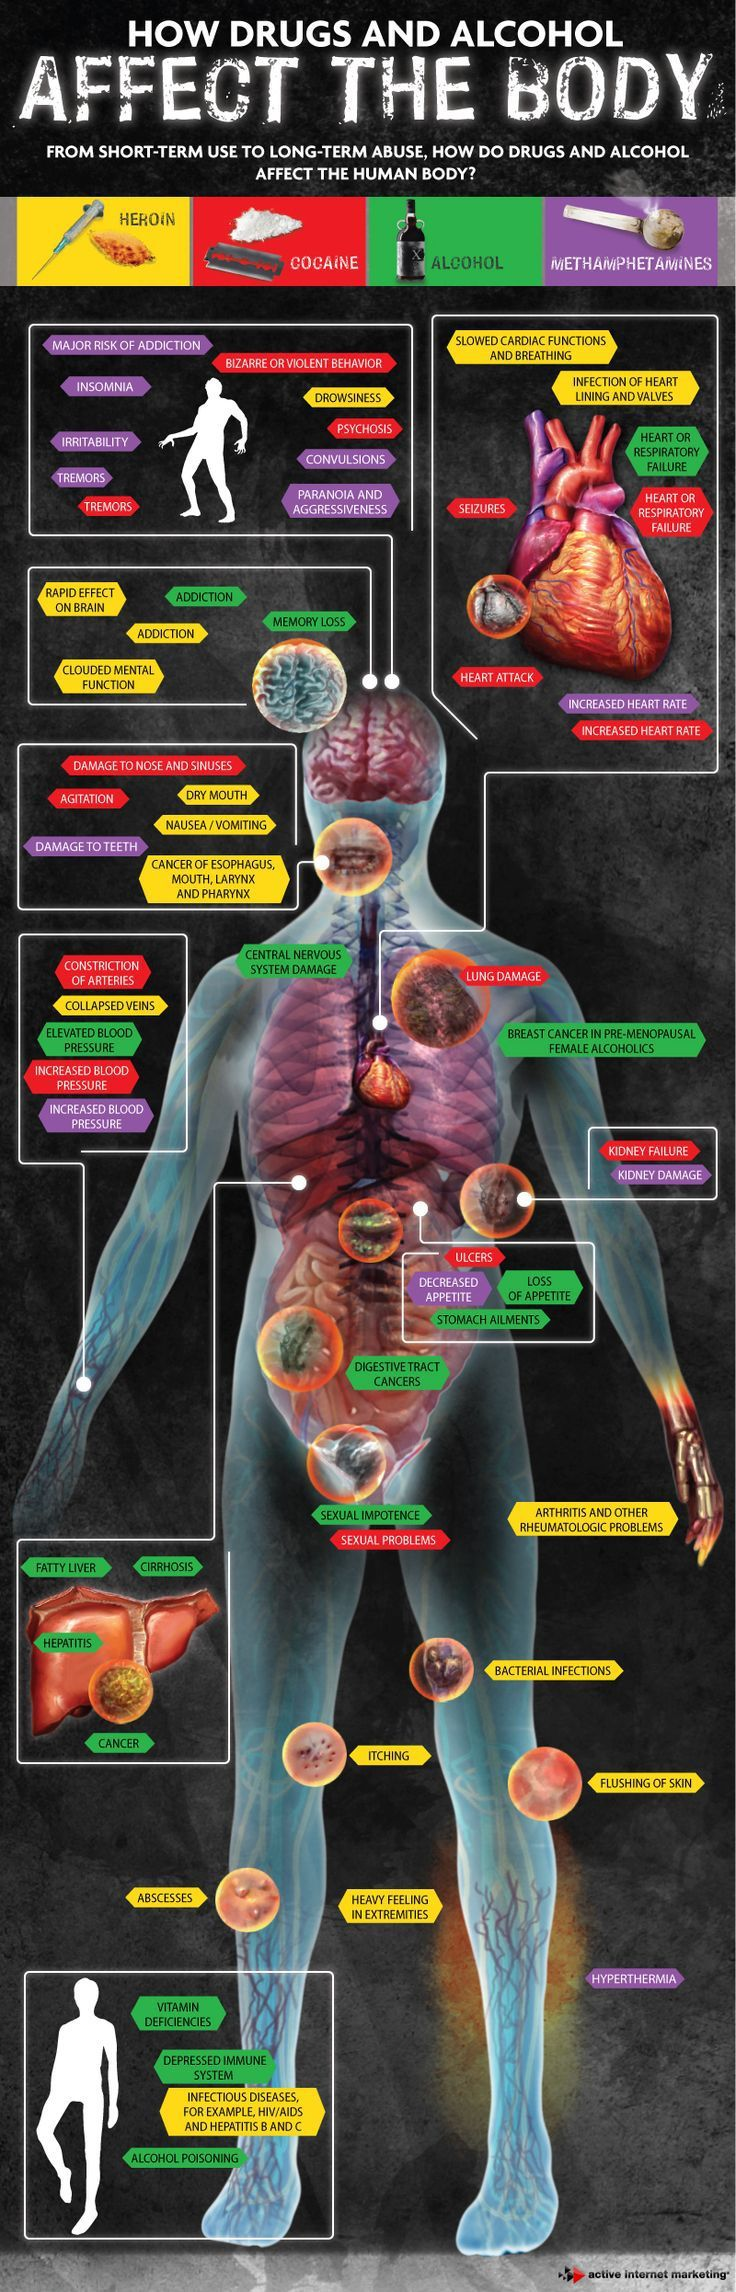 How Drugs and Alcohol Affect The Body